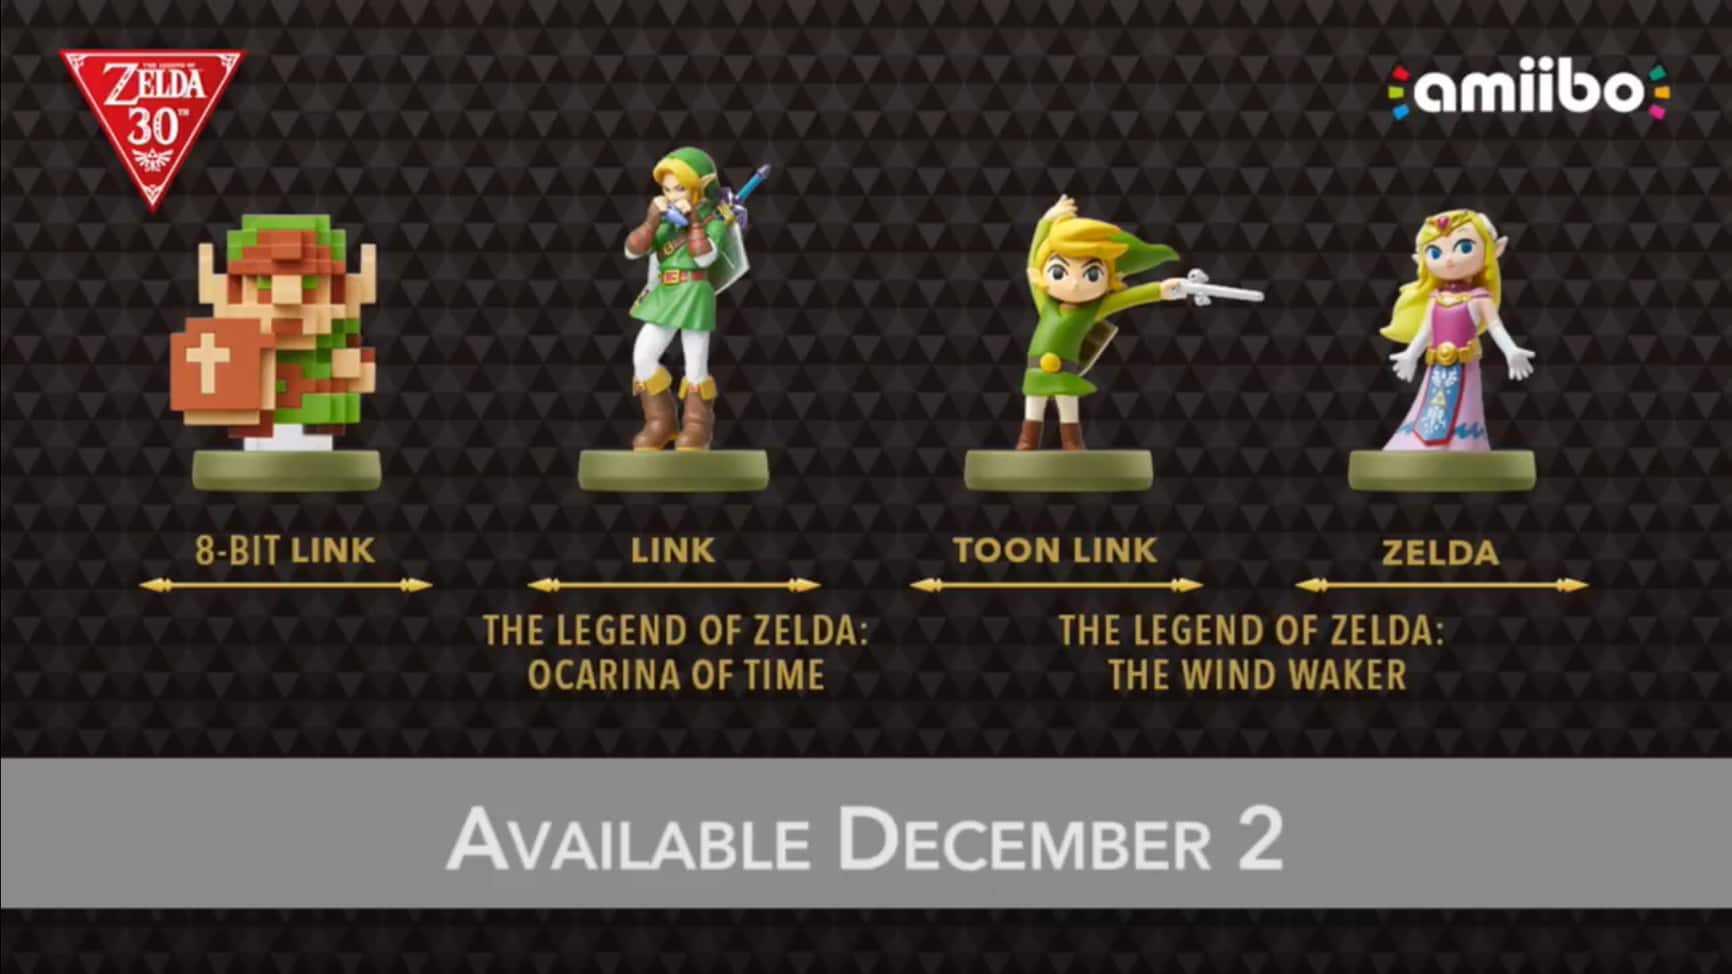 New amiibo pre orders Zelda Oot + windwaker and more 12.99 FS with prime. Cheaper with prime